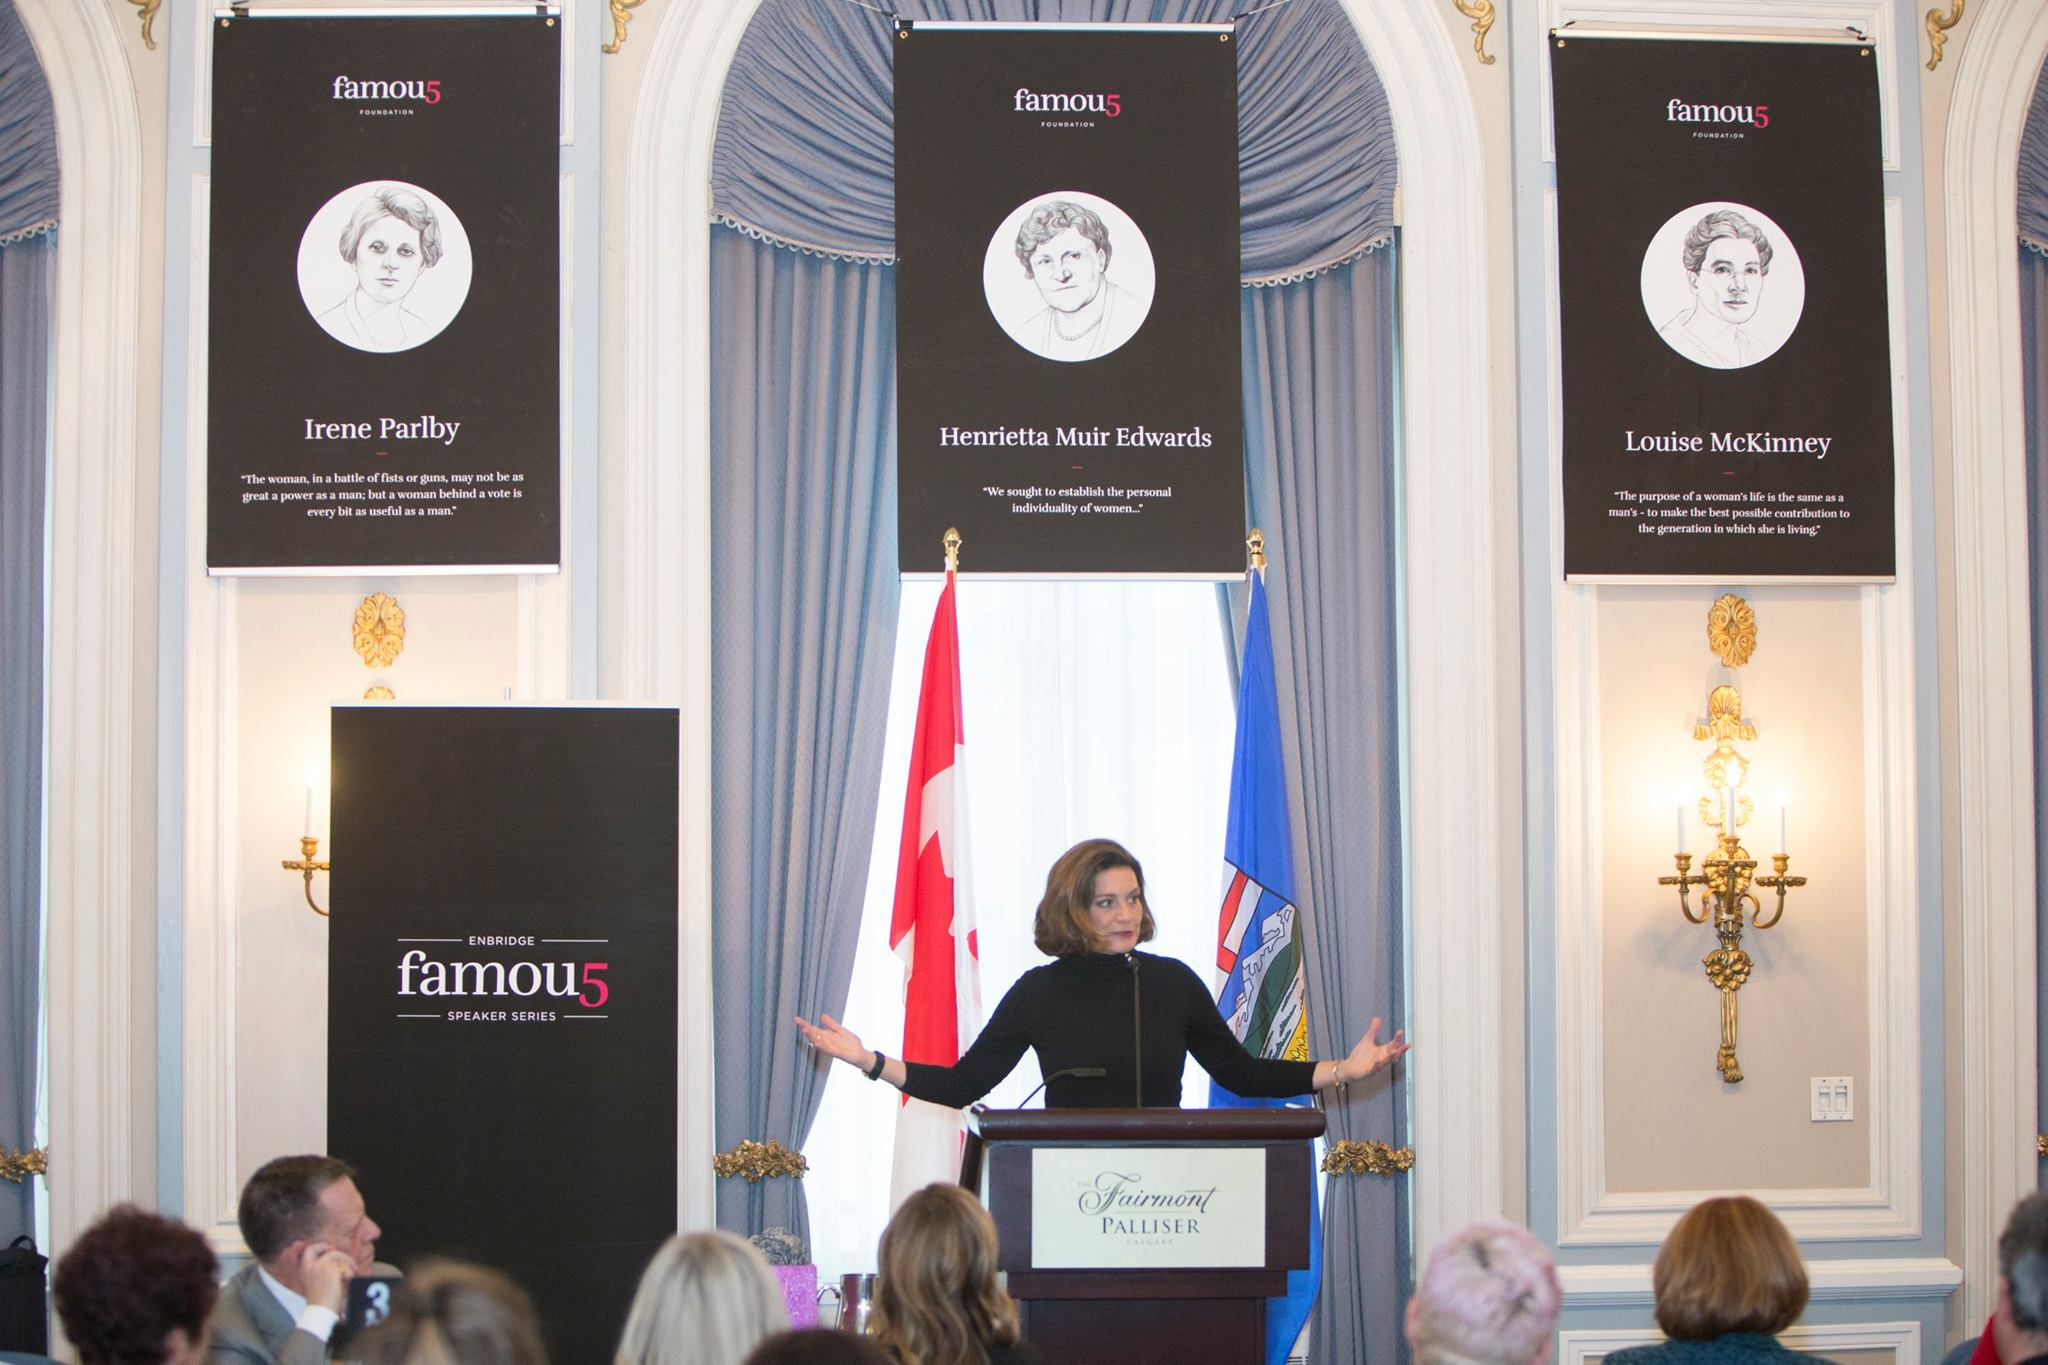 Lisa LaFlamme inspiring the room at the Famous 5 Speaker Series